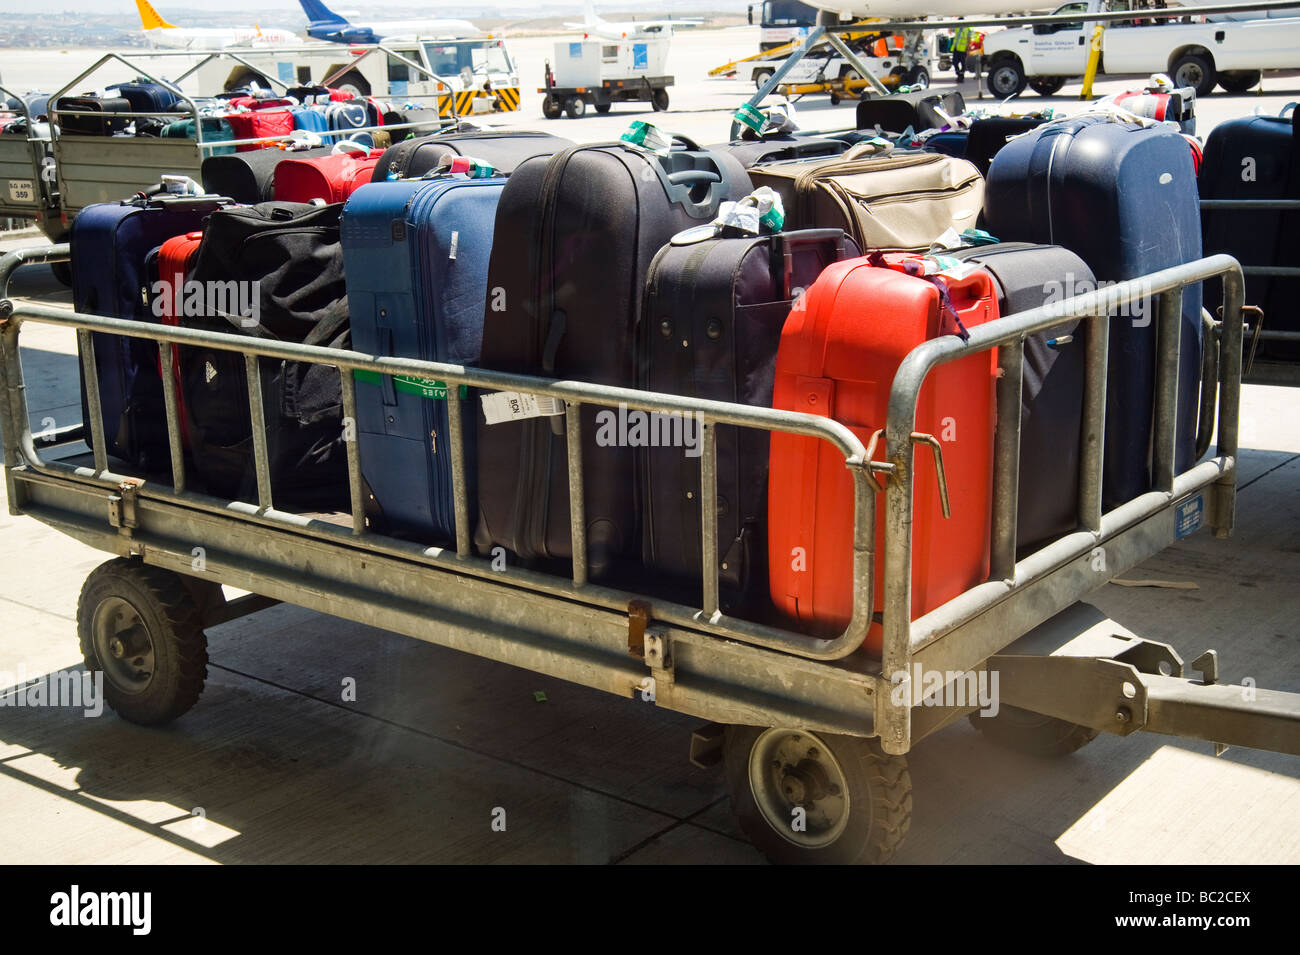 596ae5cd8dff5 Luggage Trolley Airport Uk Stock Photos   Luggage Trolley Airport Uk ...